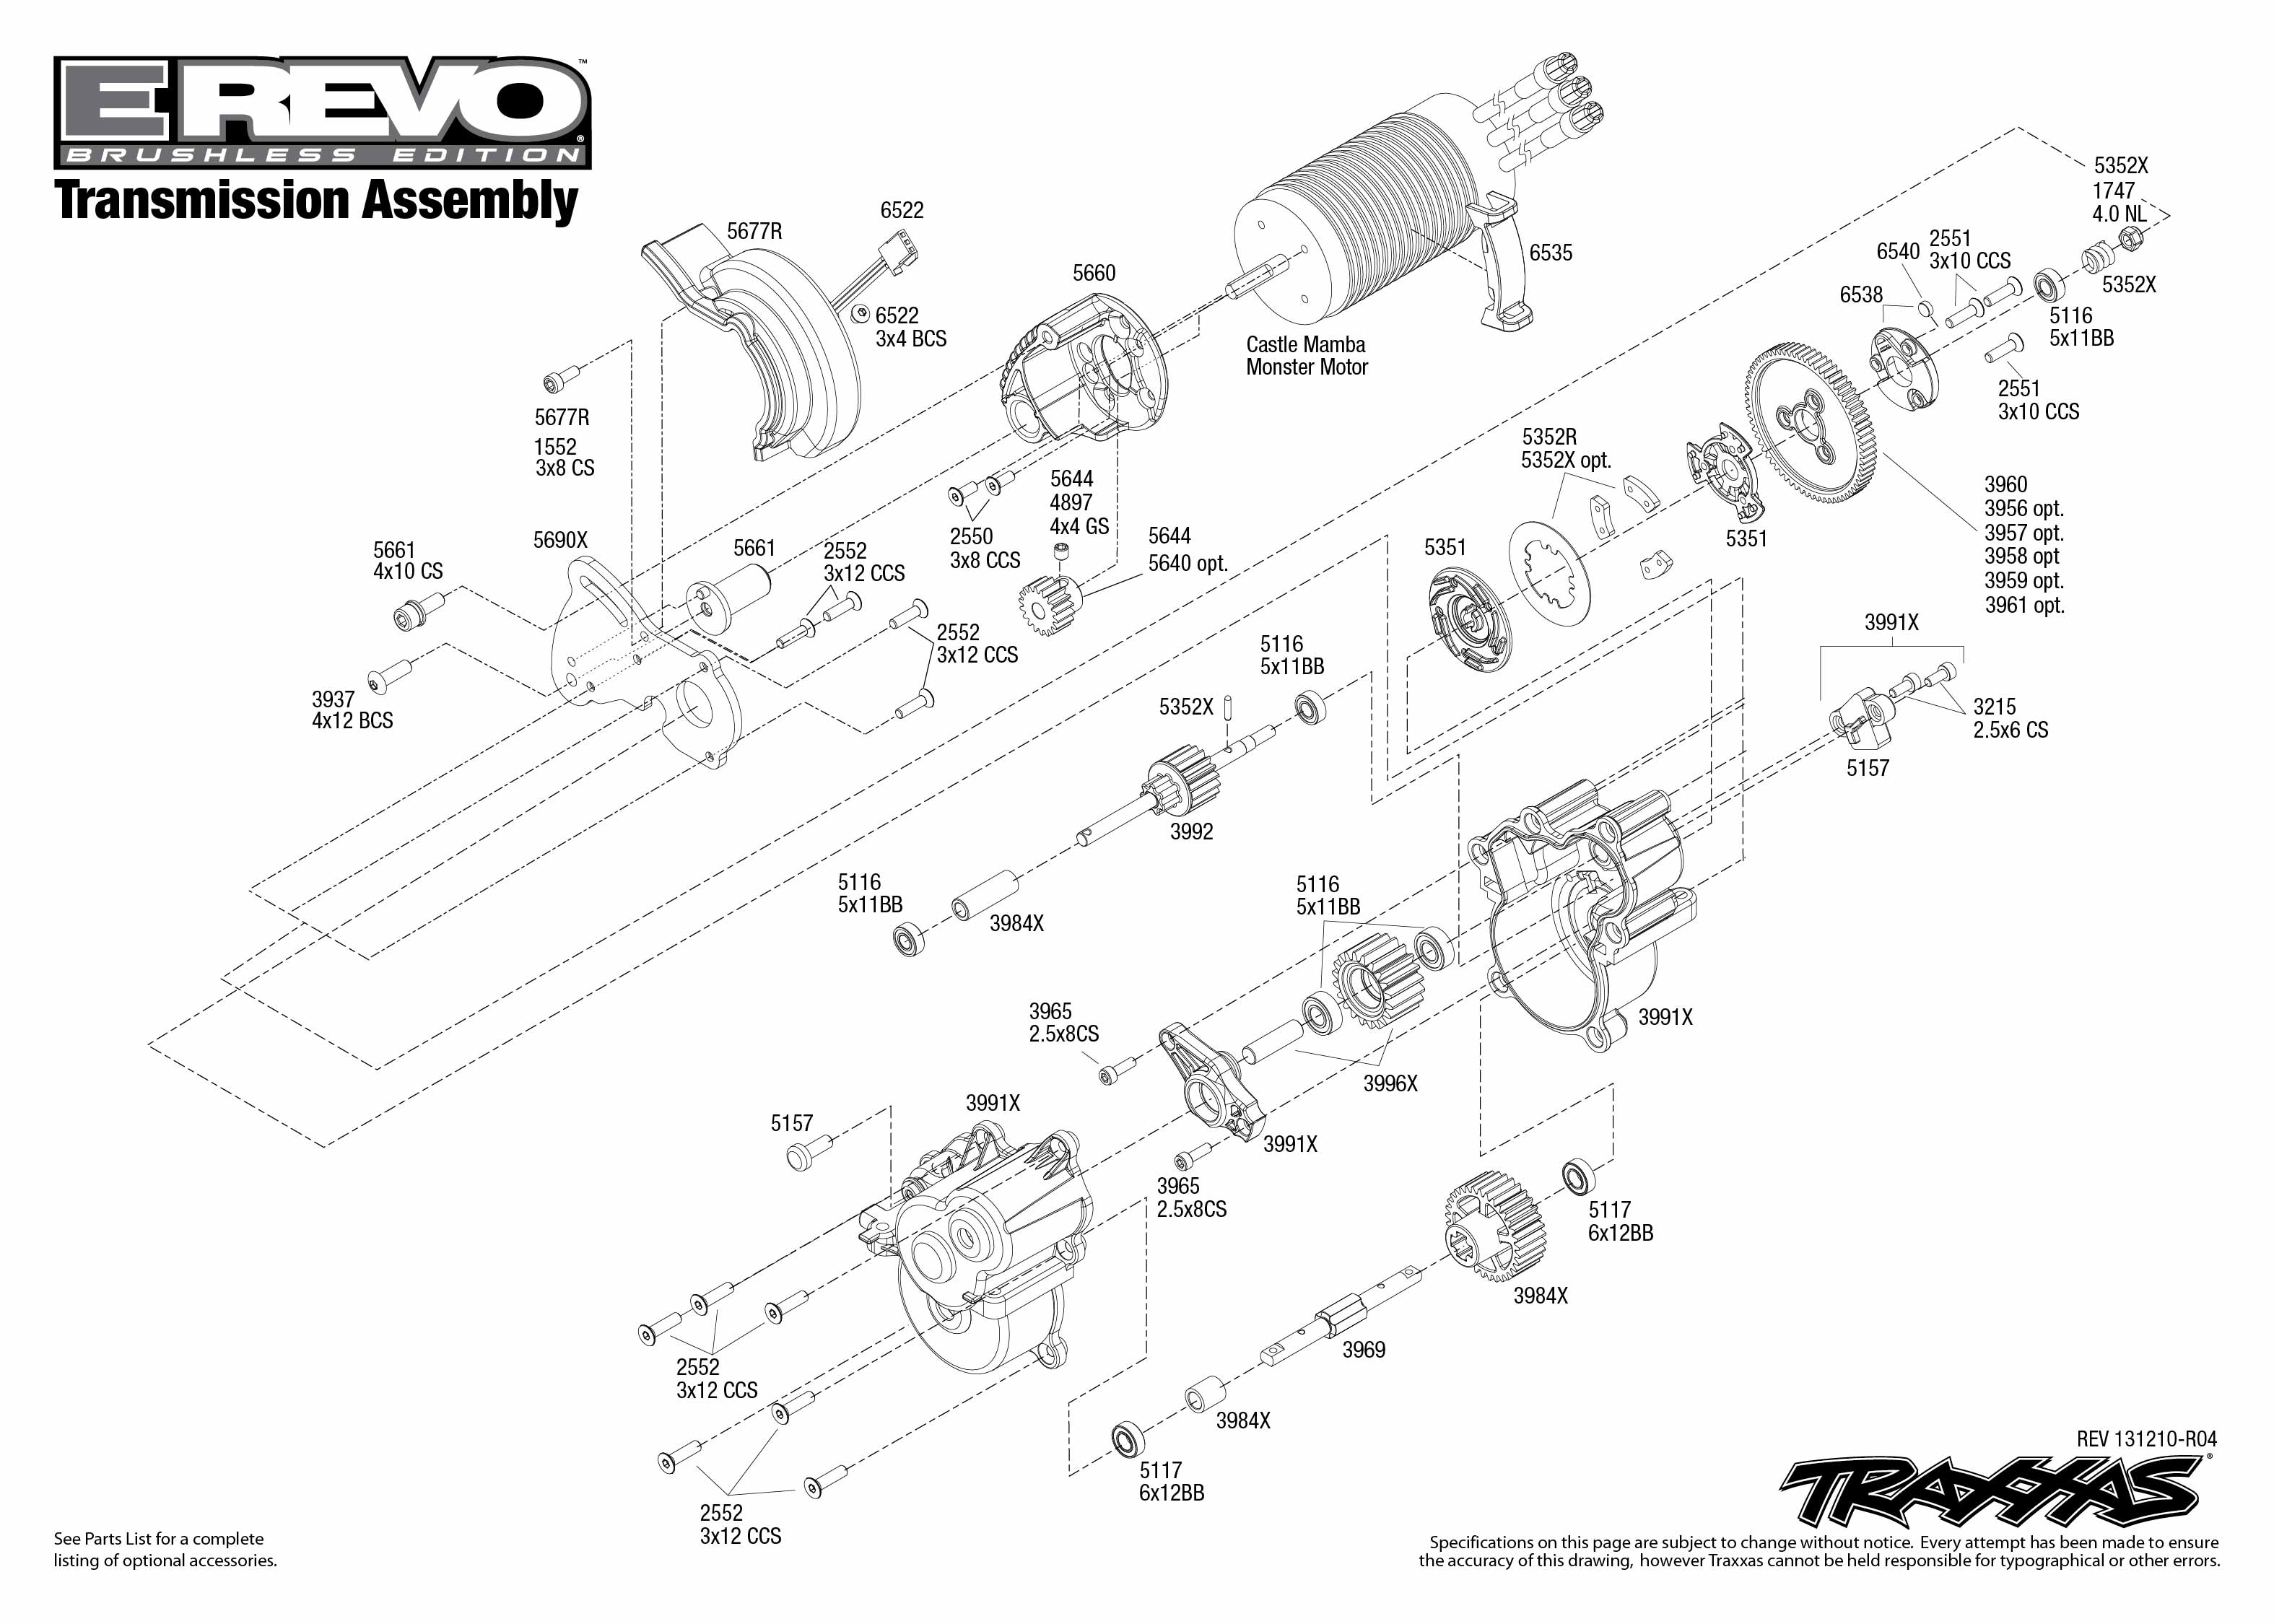 5608 Transmission Exploded View (E-Revo Brushless, w/ TQi